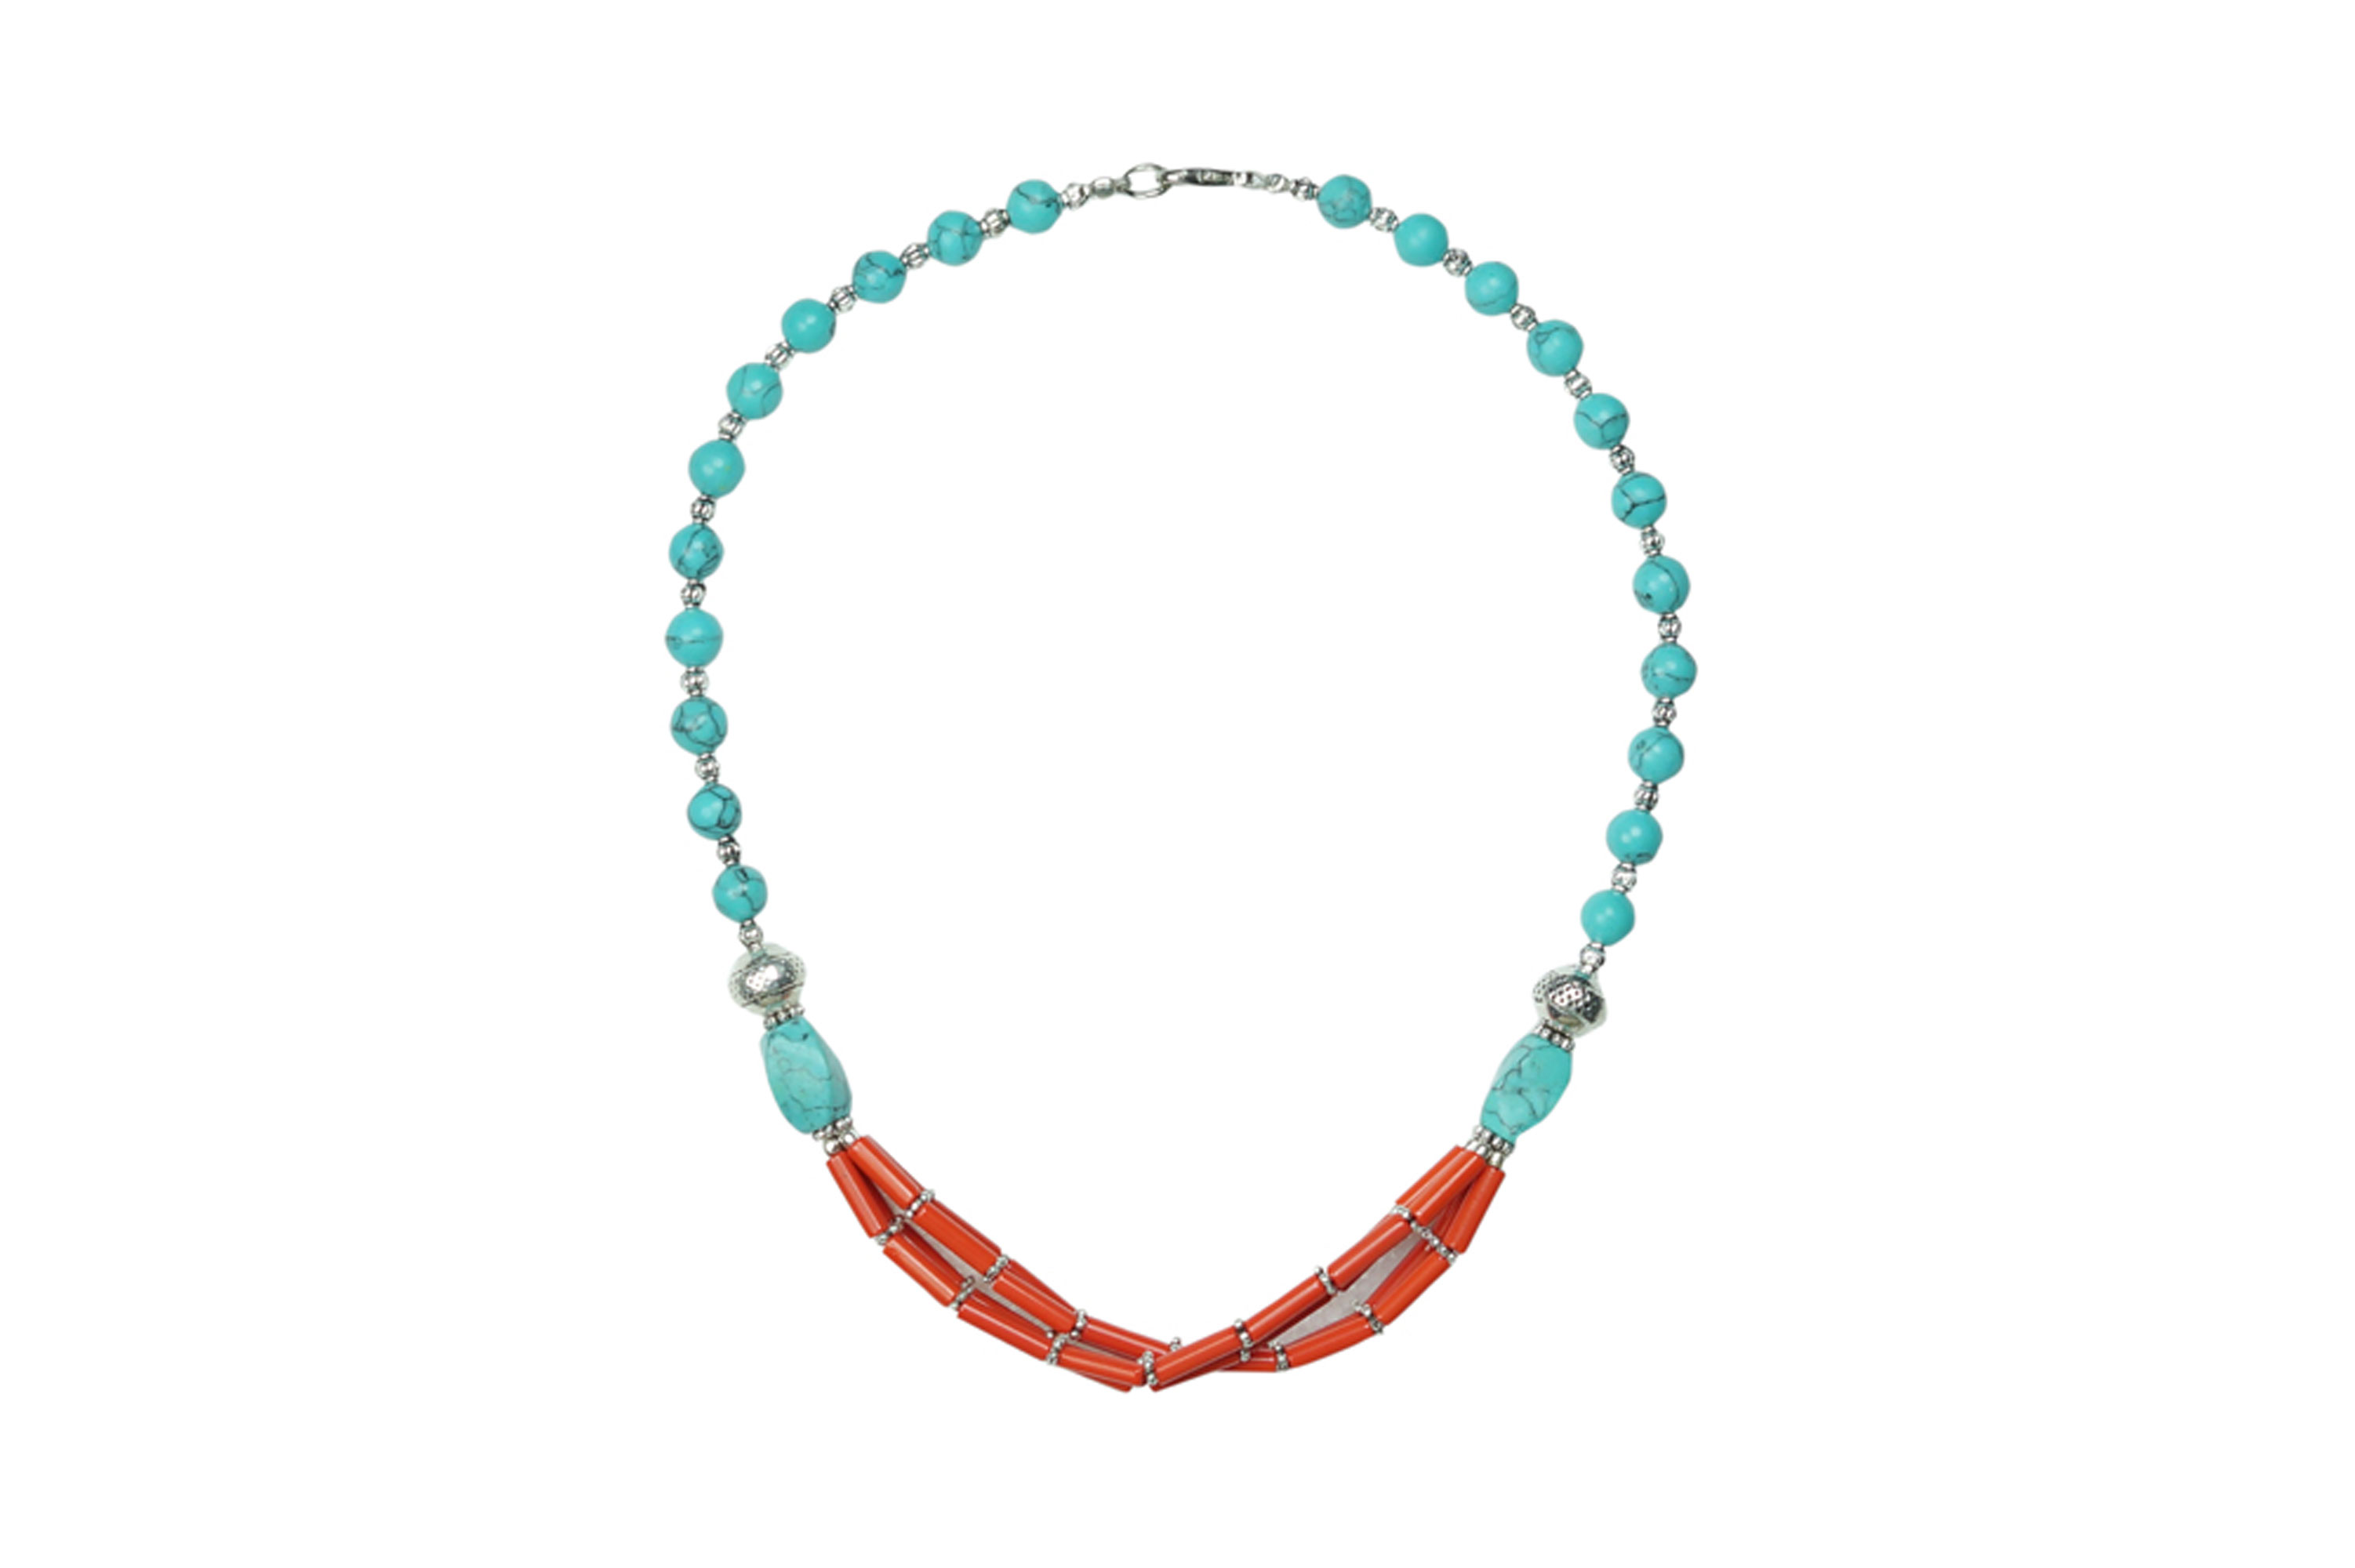 Mogul Bohemian Jewelry turquoise coral Beads Pendent Necklace Artisan Crafted Beads Stones by